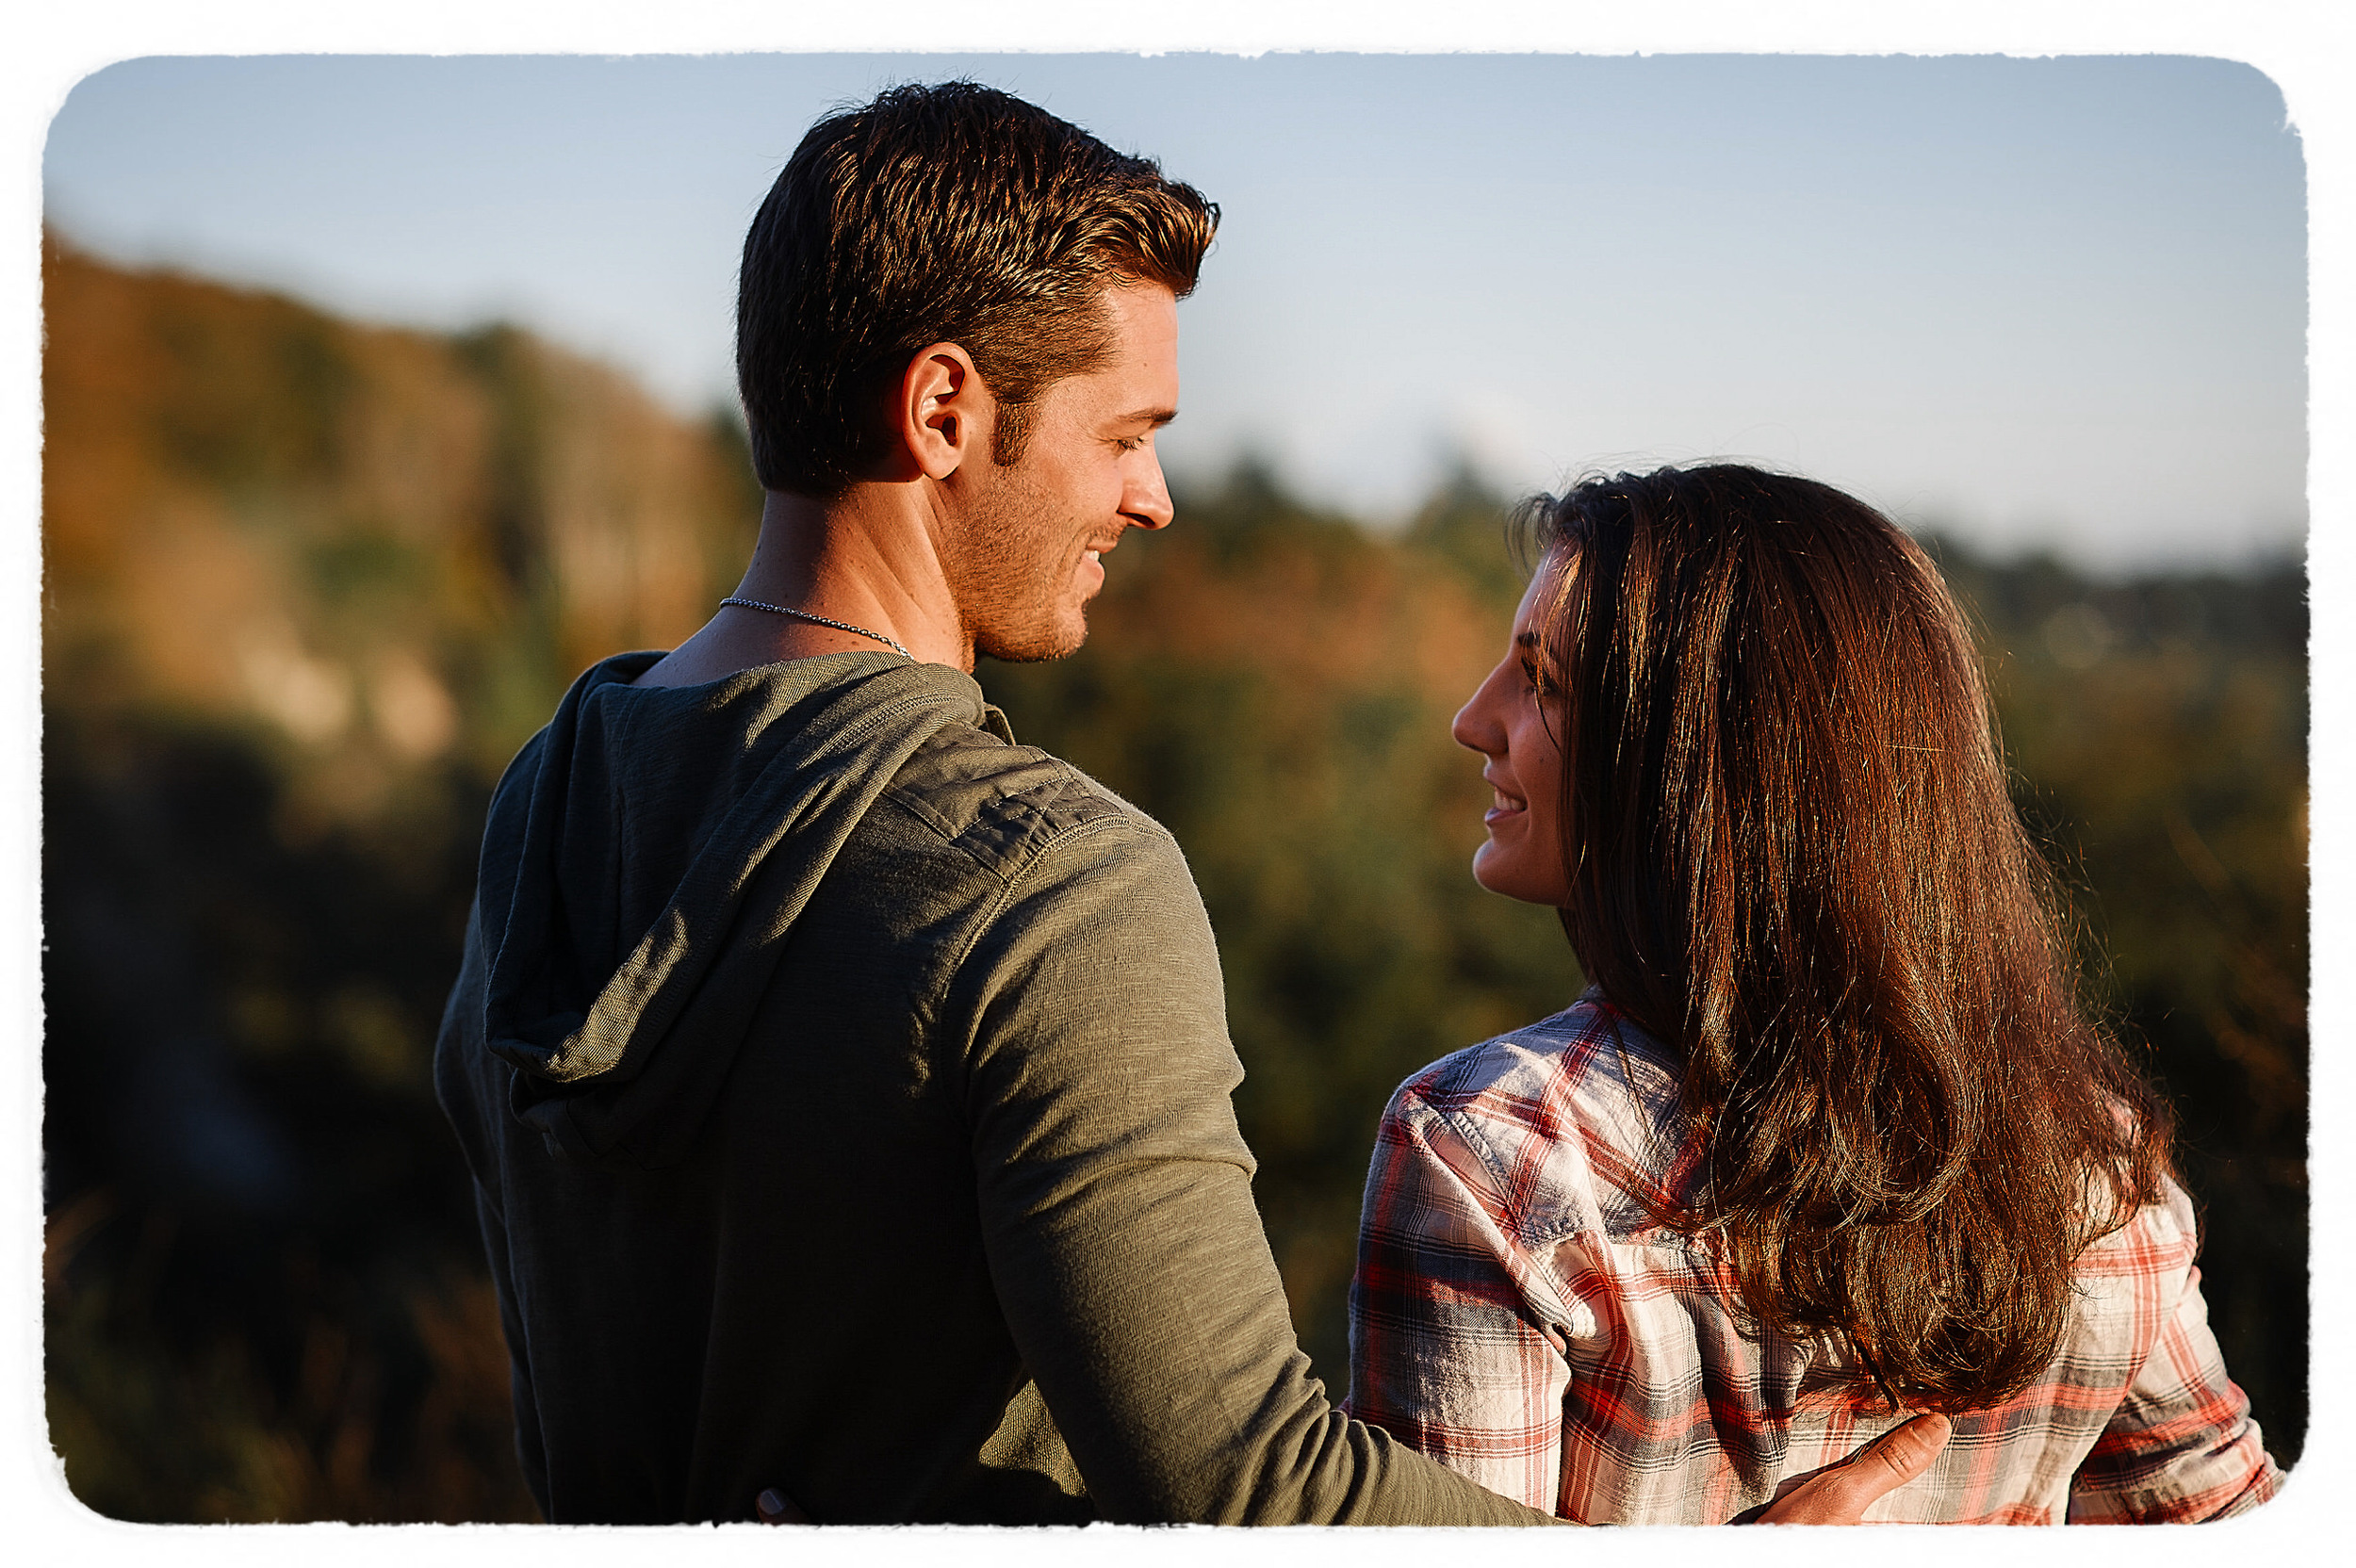 Kelly&Mike-EngagementSession-OriginalCollection-136Film.jpg